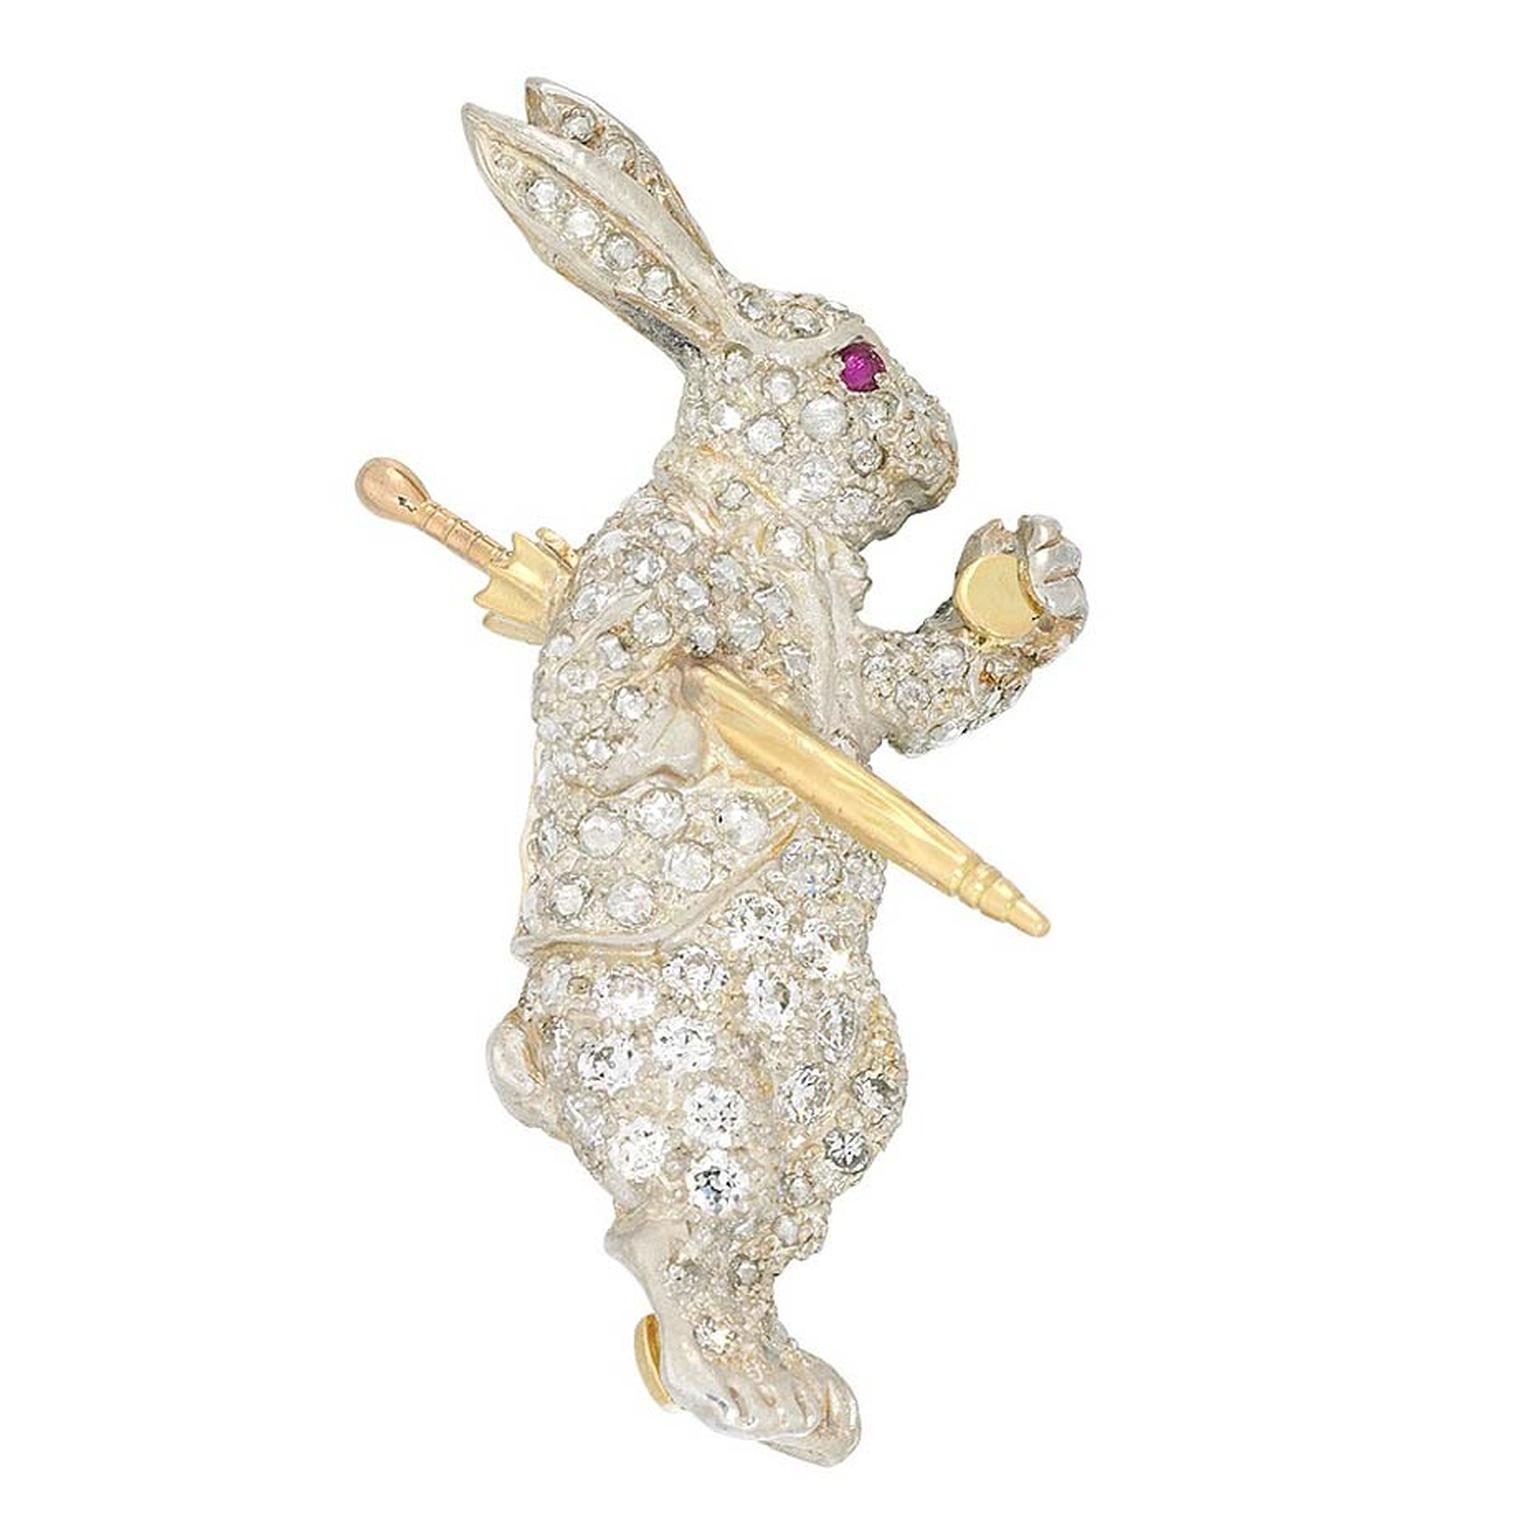 Bentley & Skinner White Rabbit antique jewellery brooch in yellow gold, set with a ruby and 1.10ct of diamonds.